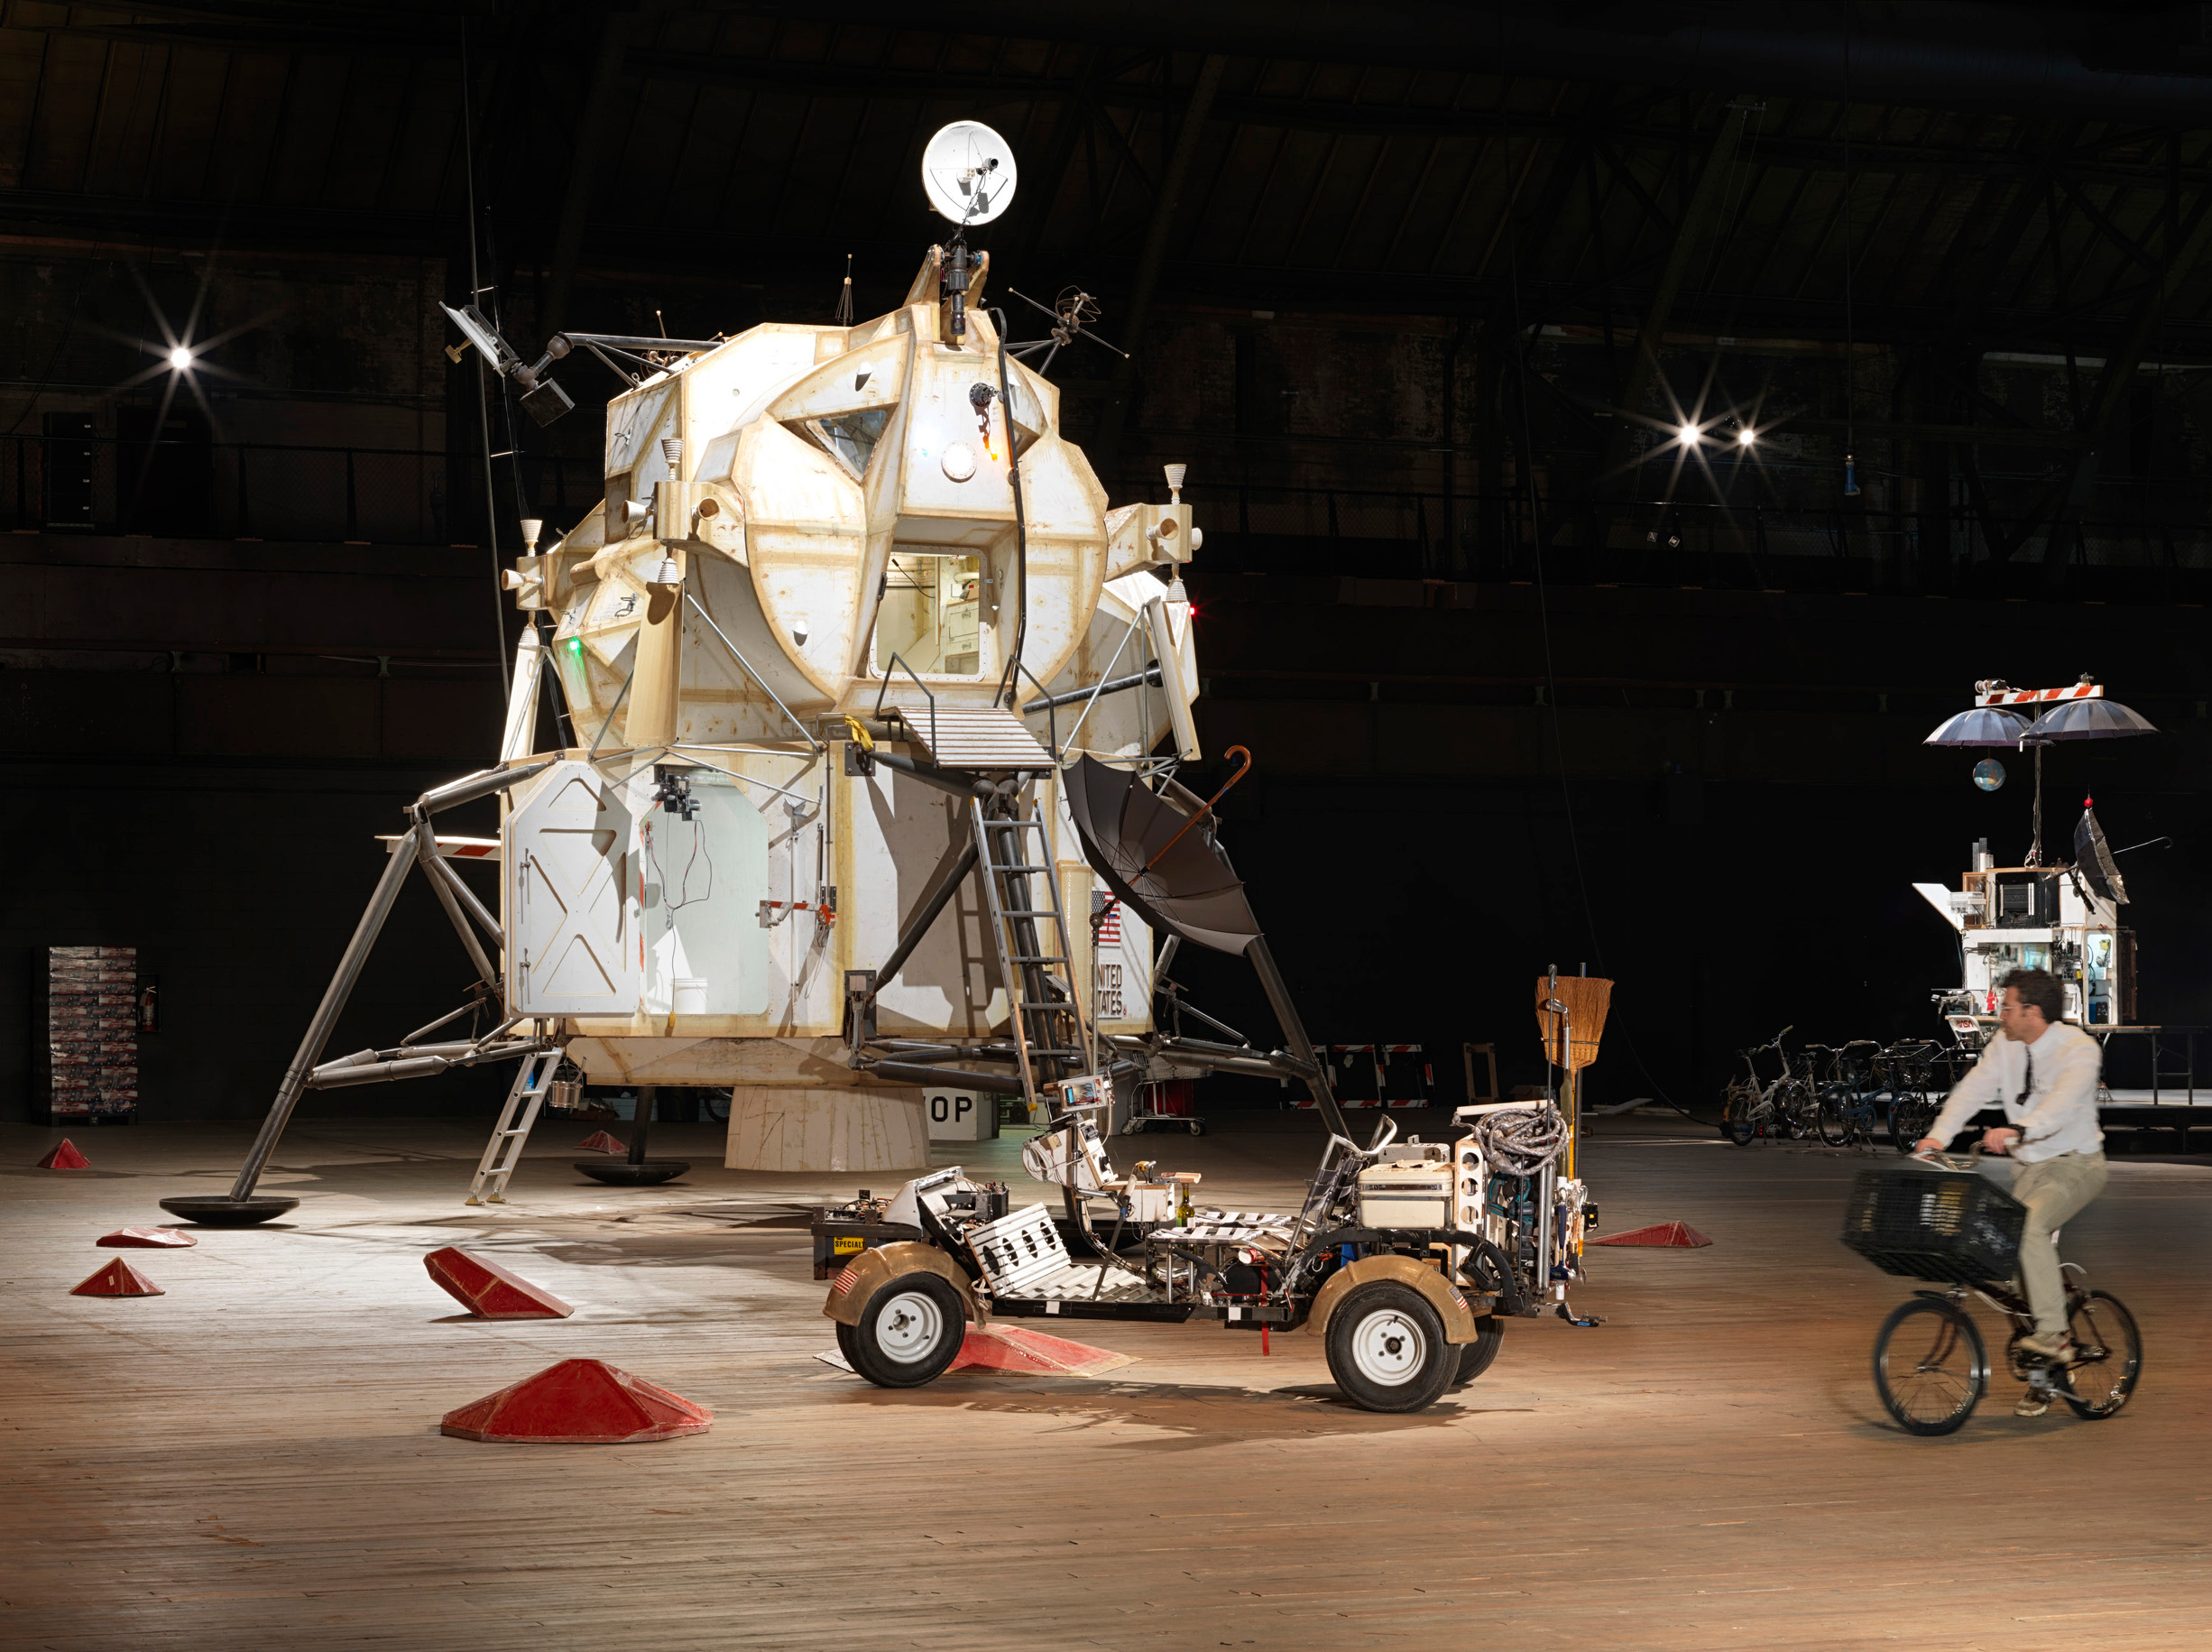 'Space Program: Mars' - Artist Tom Sachs' Vision (Photos)